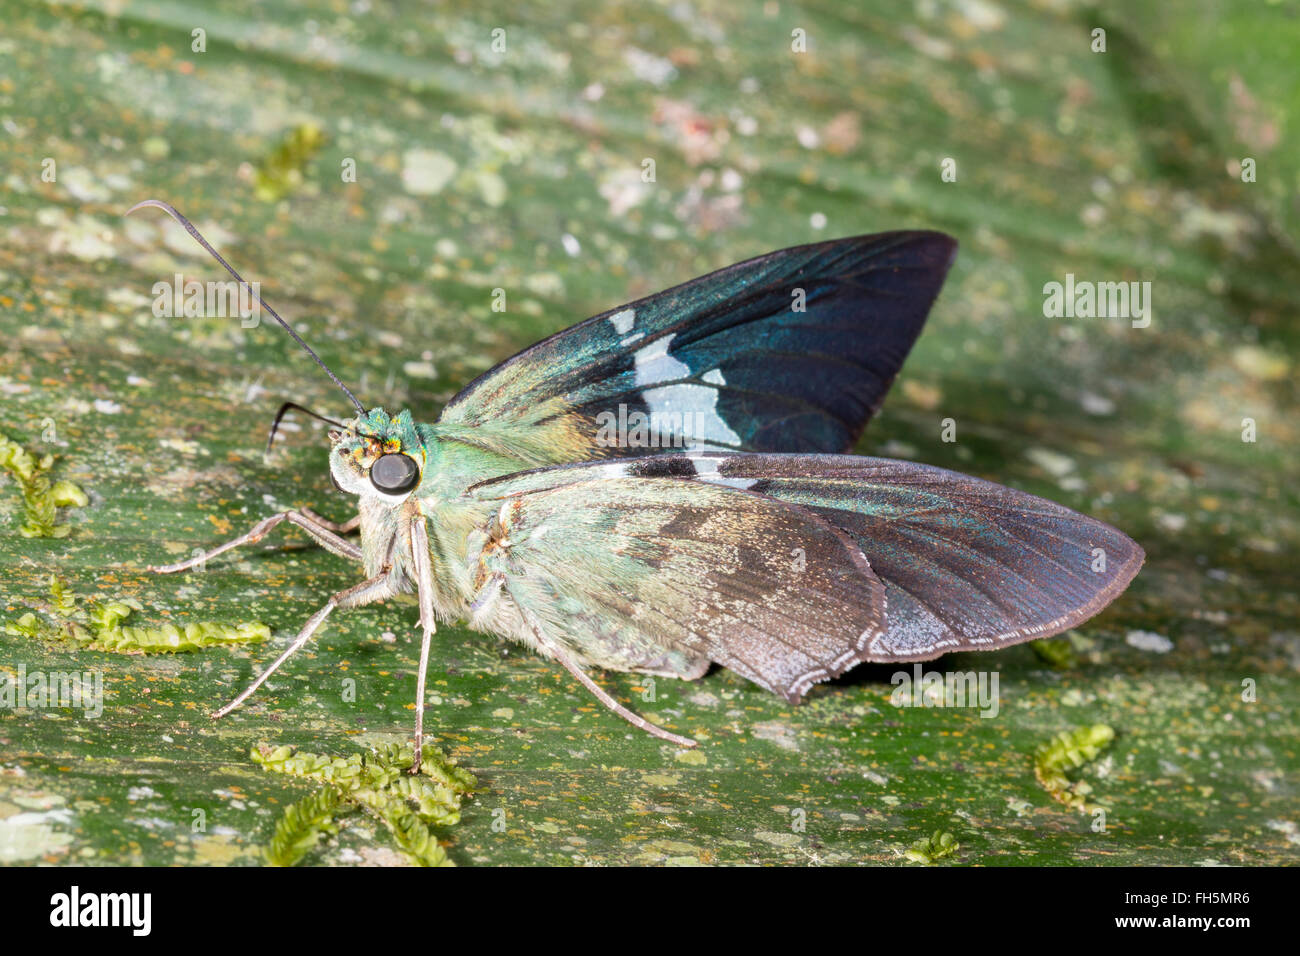 Skipper butterfly (Family Hesperidae) on a leaf in the rainforest, Pastaza province, Ecuador Stock Photo